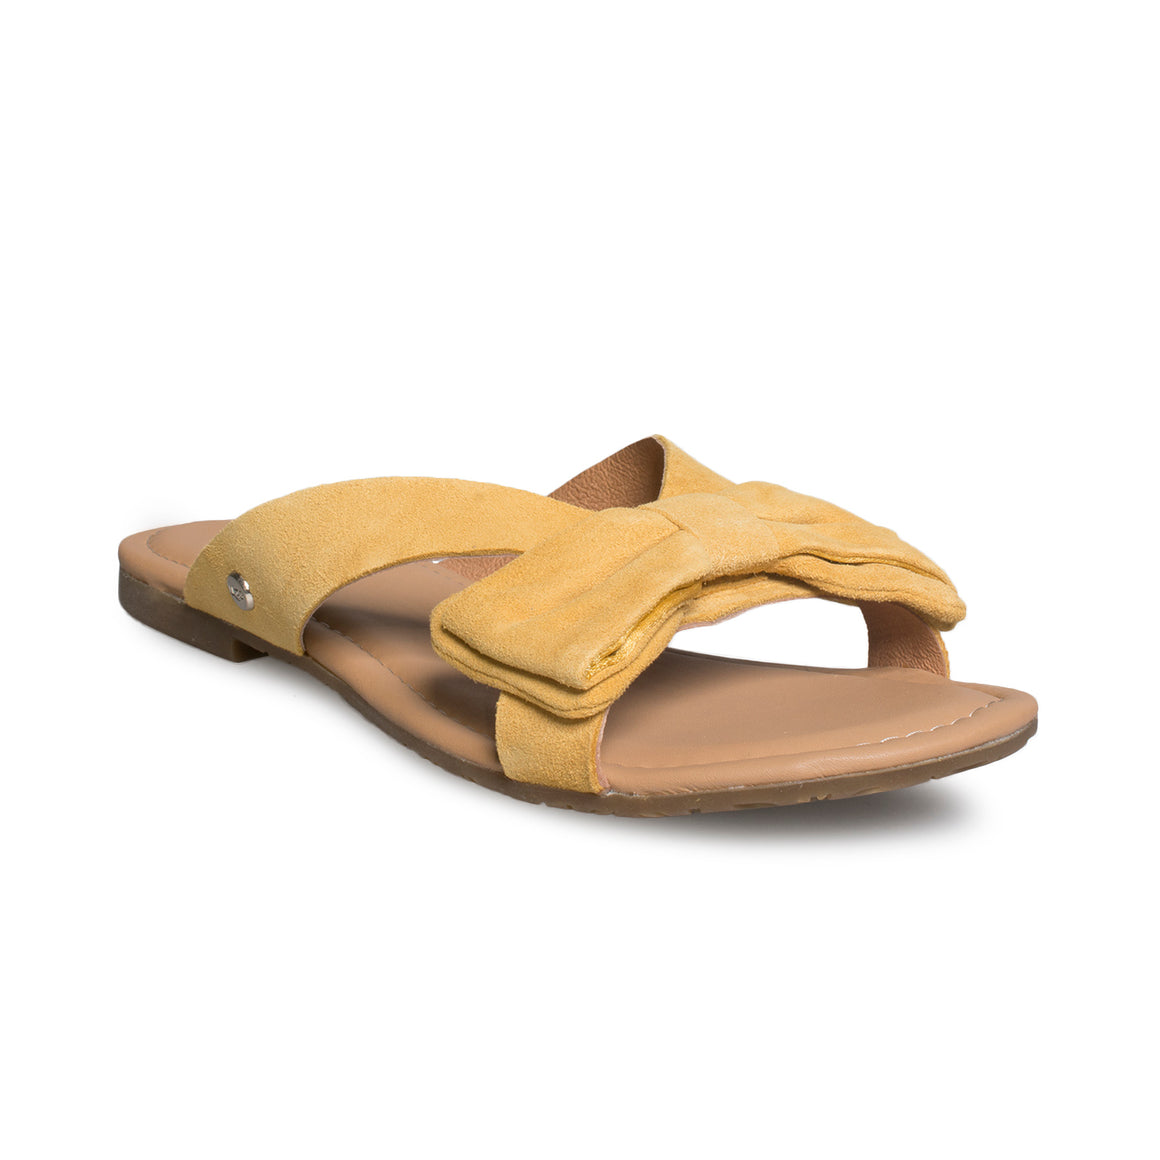 UGG Fonda Sunflower Flip Flops - Women's